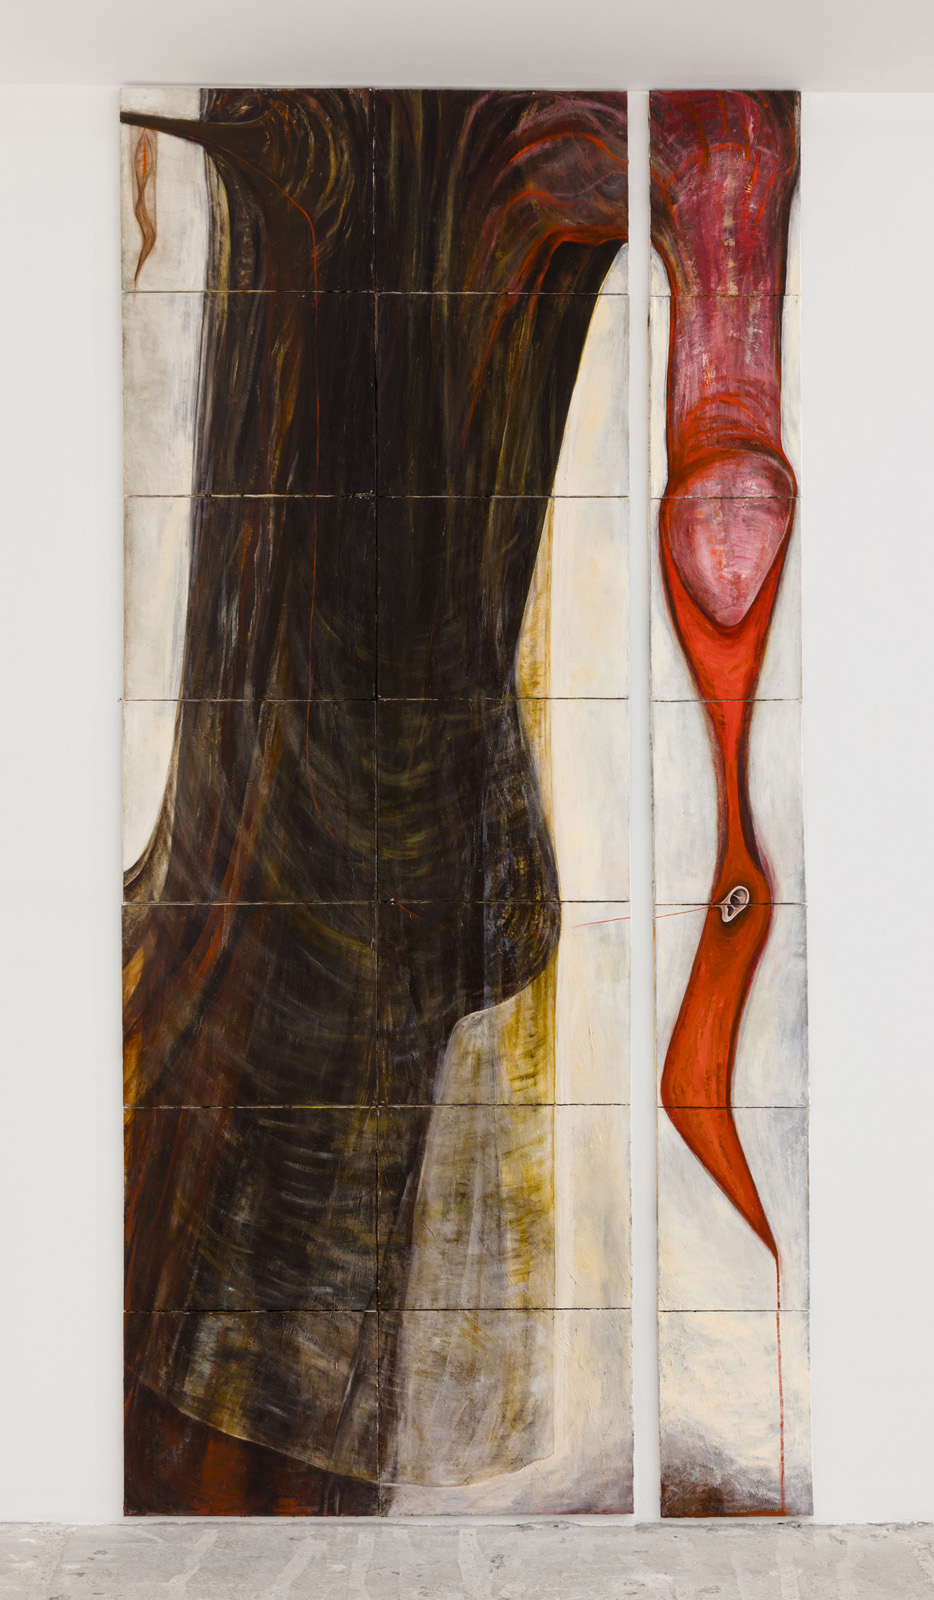 Mira Schor   Strange Fruit , 1988  Oil on 21 canvases  12 x 16 inches and 16 x 20 inches  Overall 112 x 53 inches